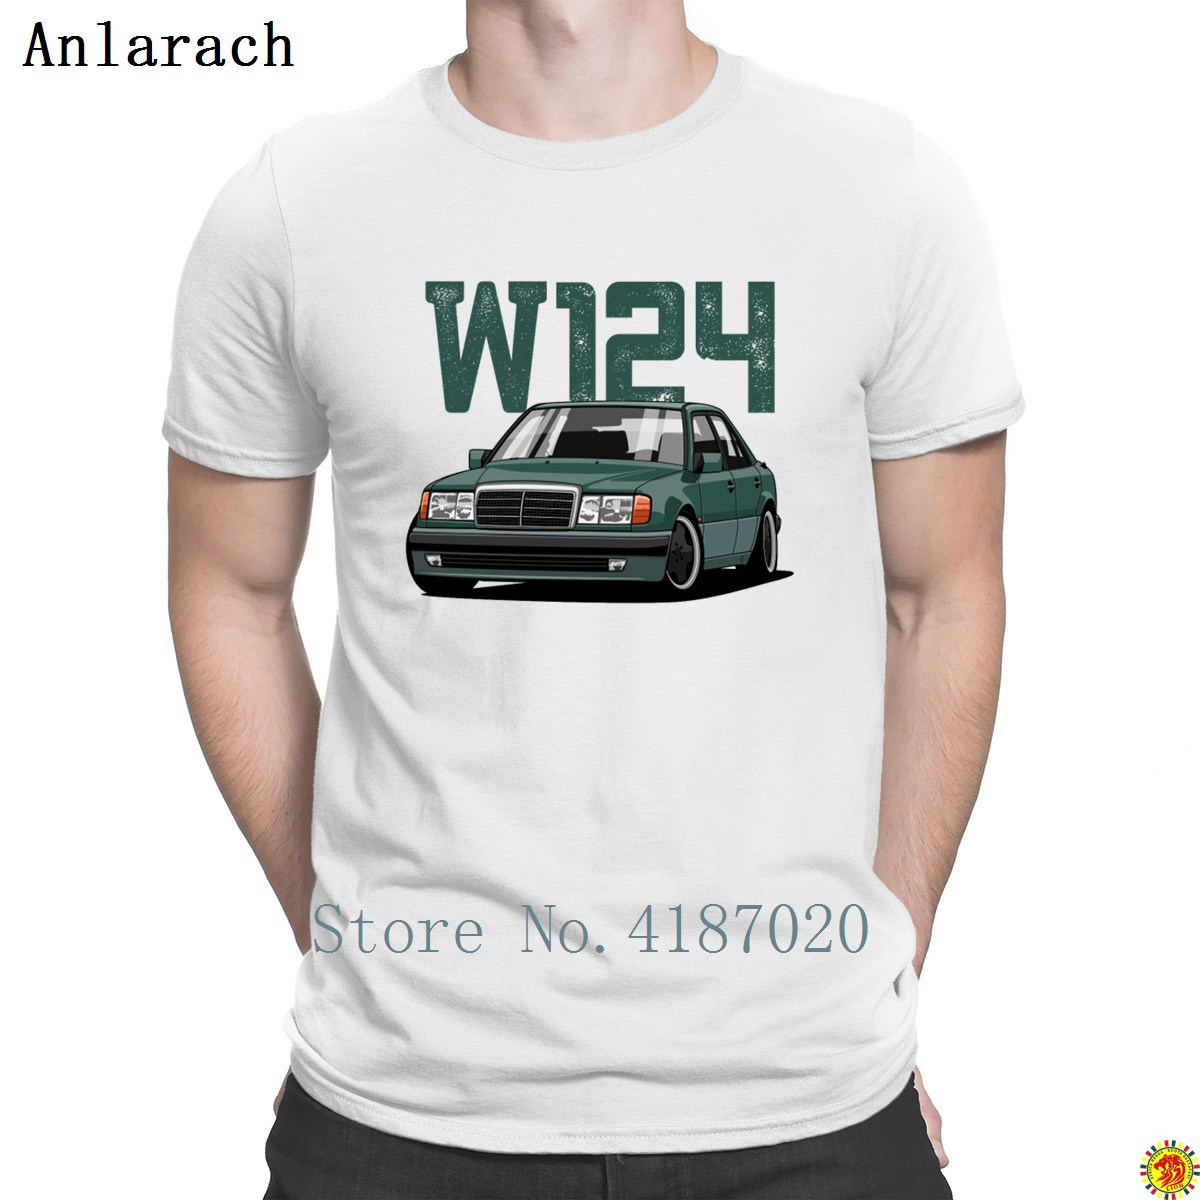 W124   T  -  Shirt   Funny Casual Hip Hop Standard Size S-3xl   T     Shirt   For Men Great Spring Autumn Designing Anlarach Hot Sale